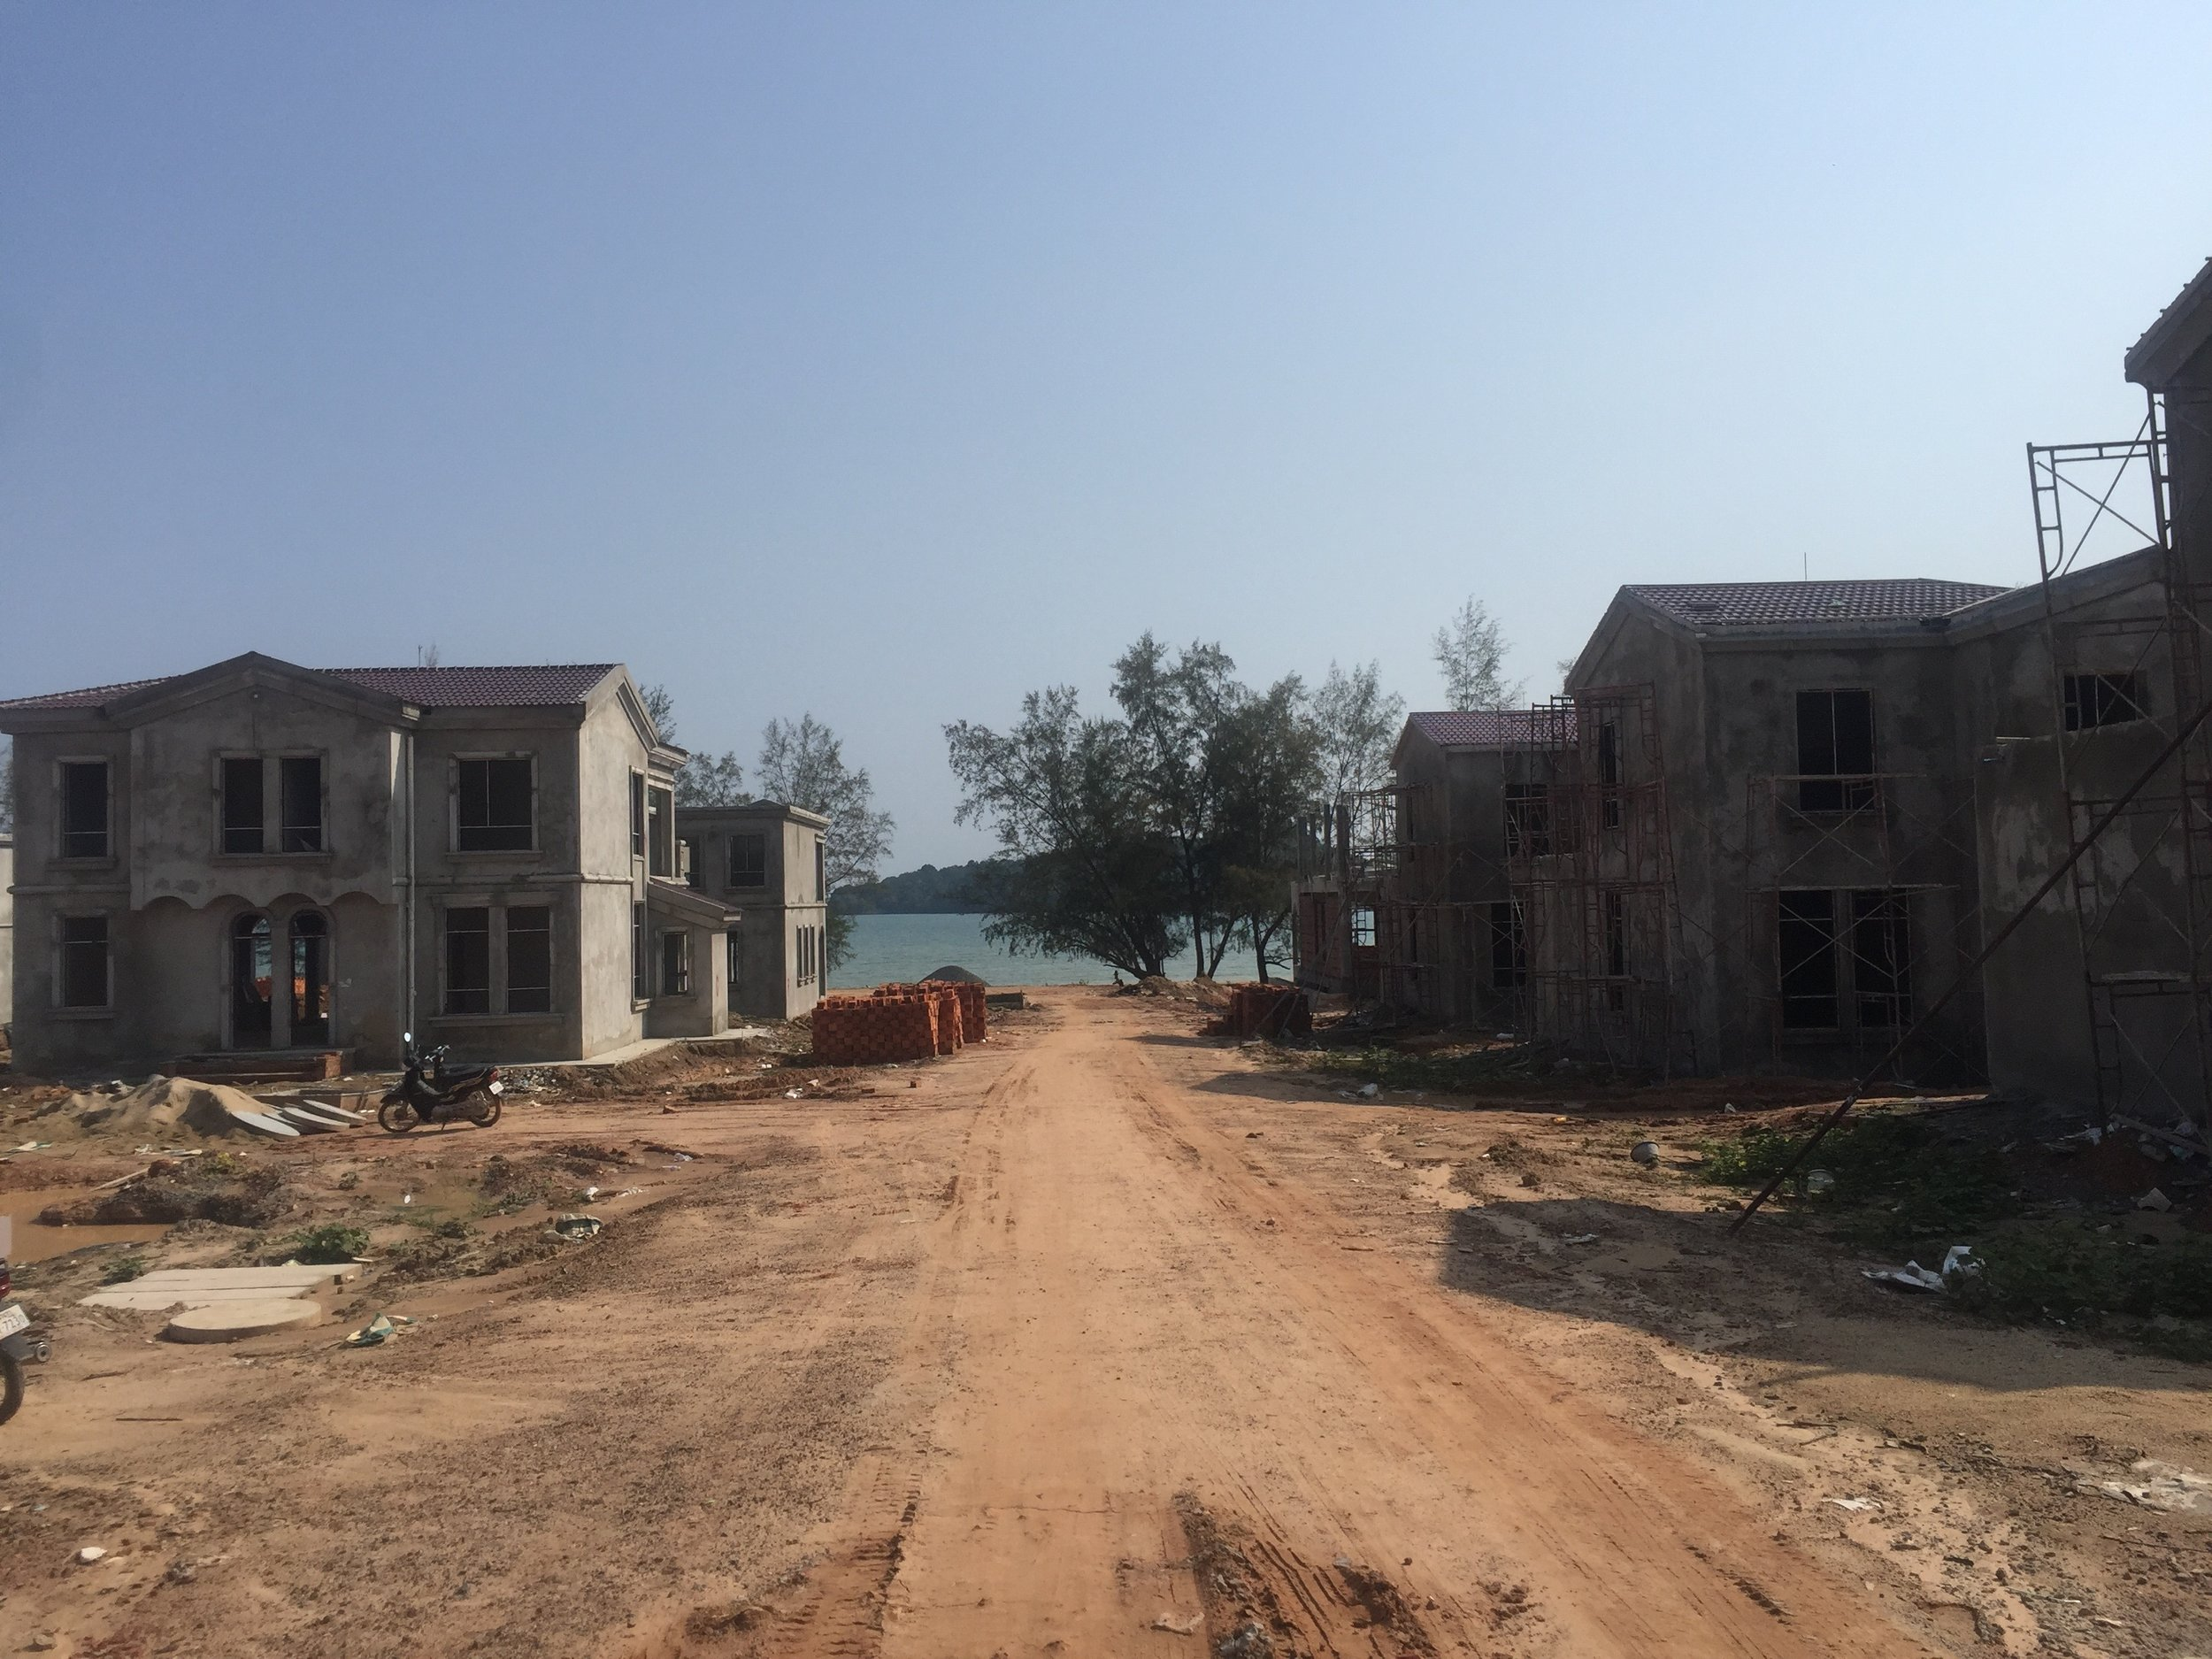 Some massive Chinese housing community being built somewhere down along the coast